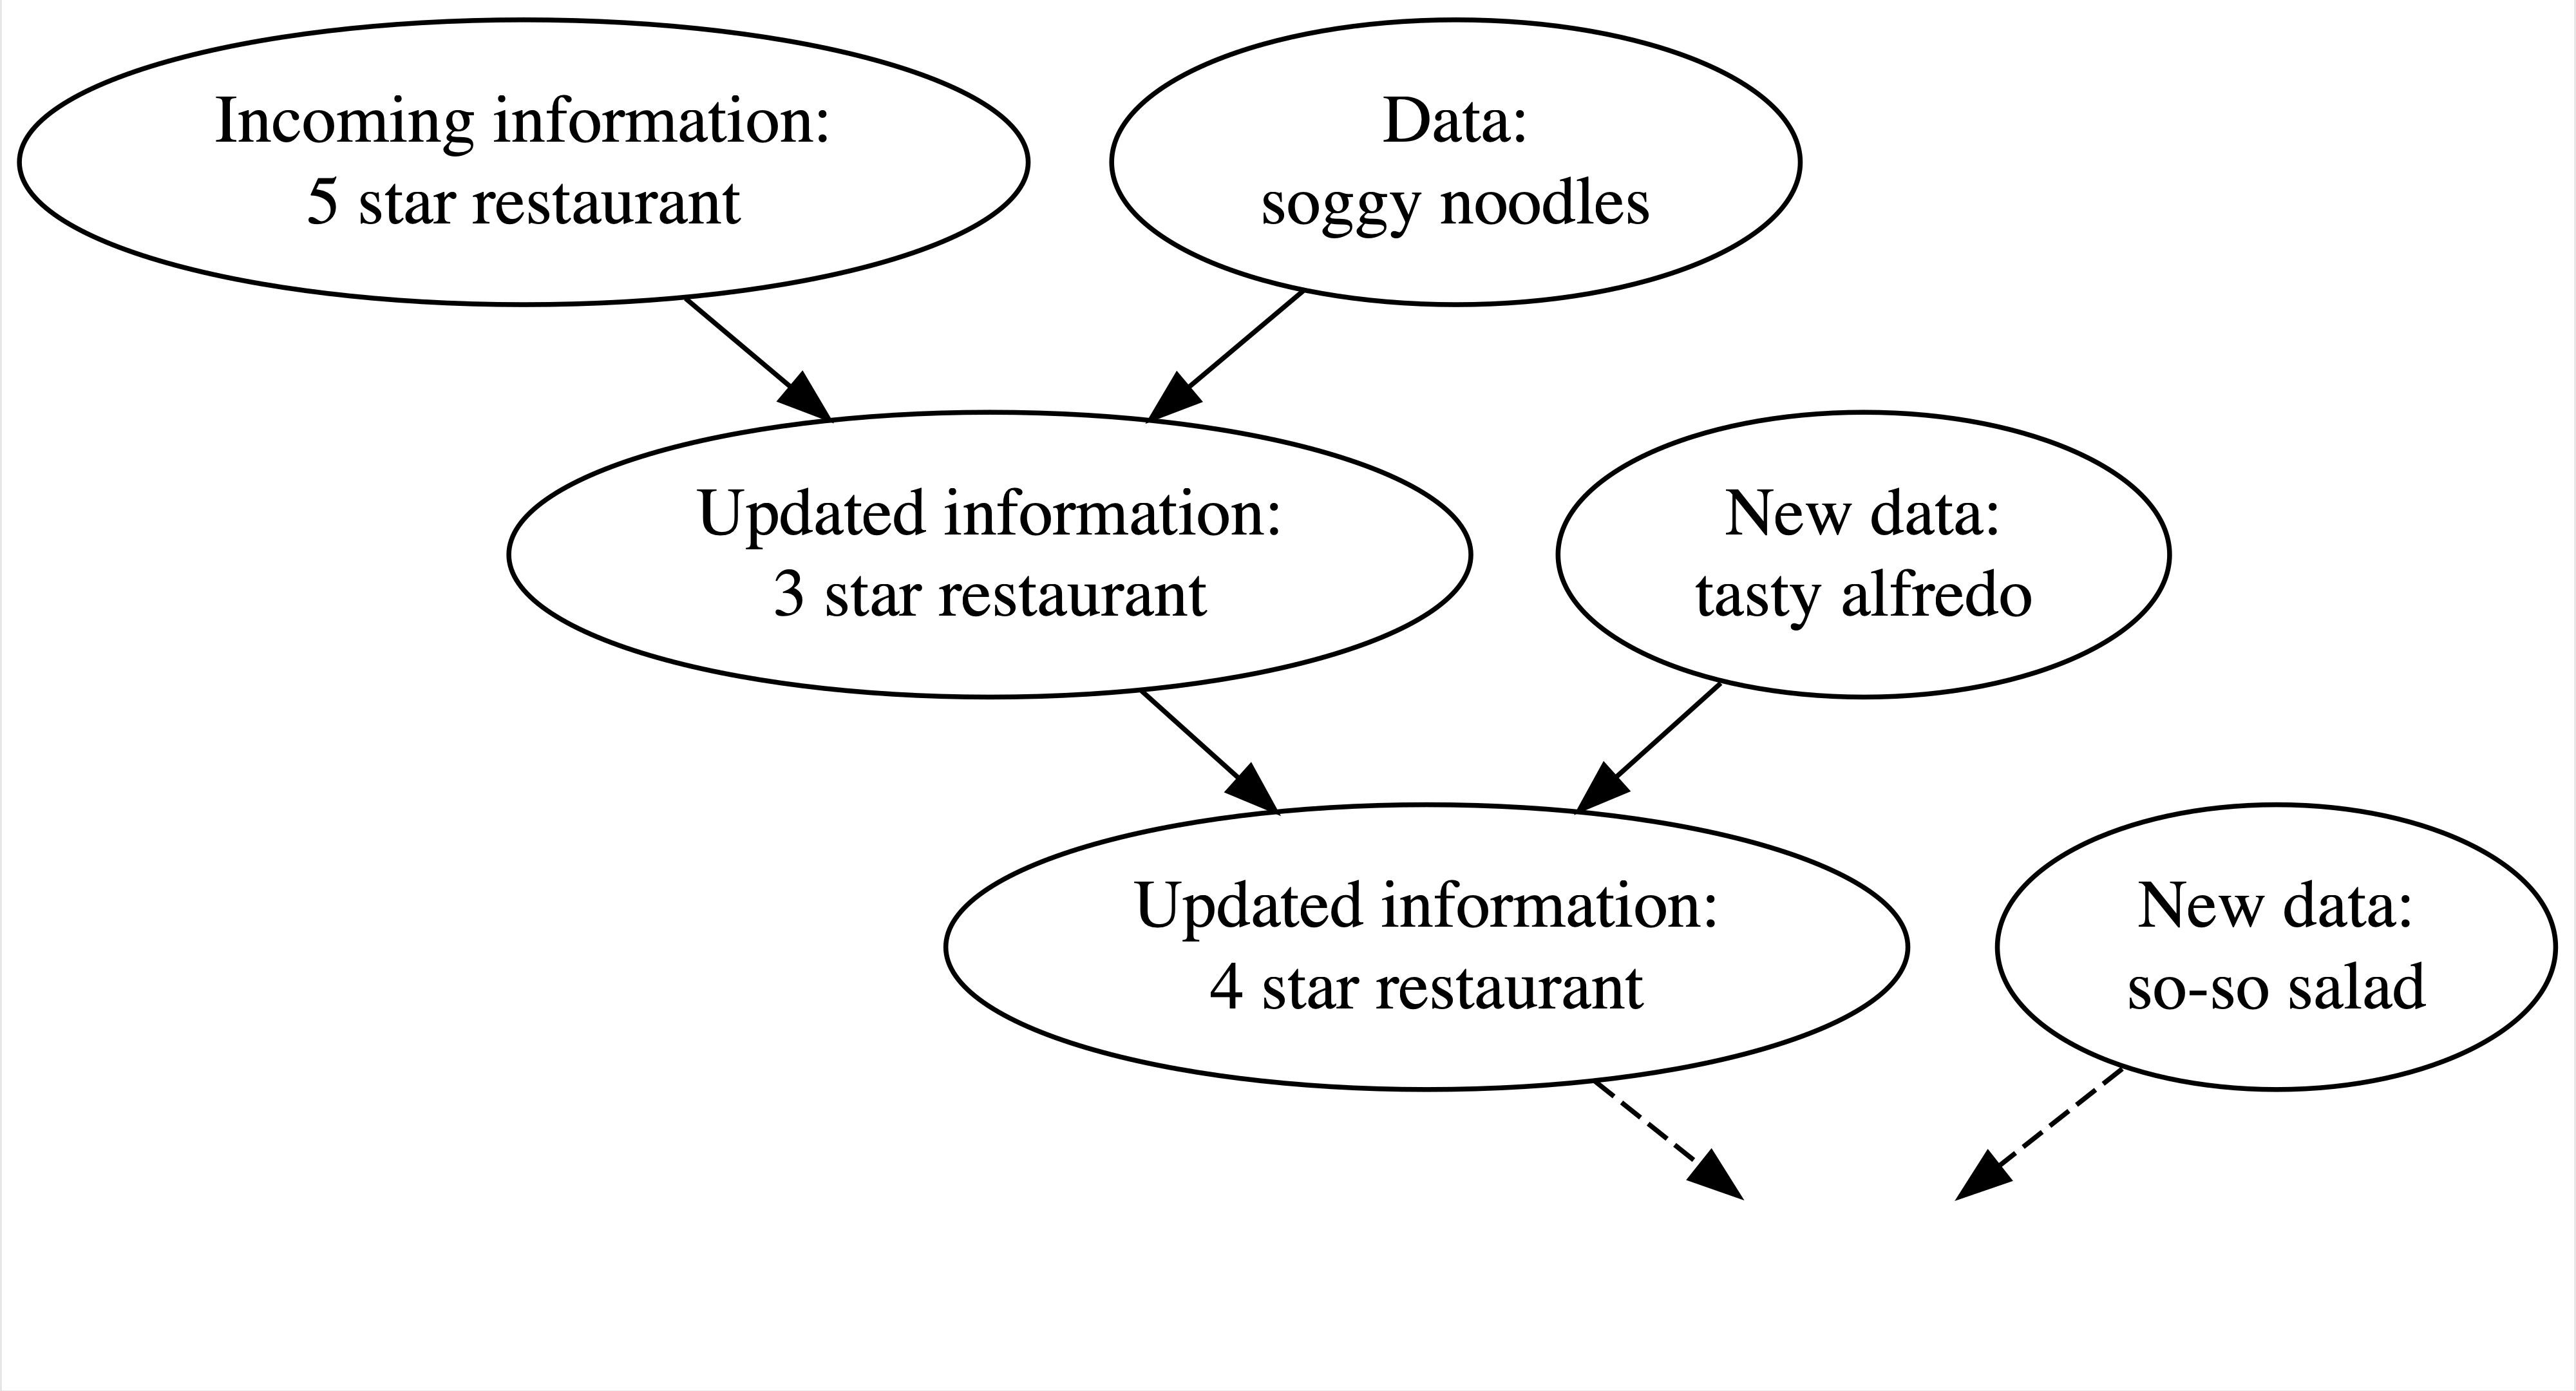 A diagram for updating your knowledge about a restaurant.